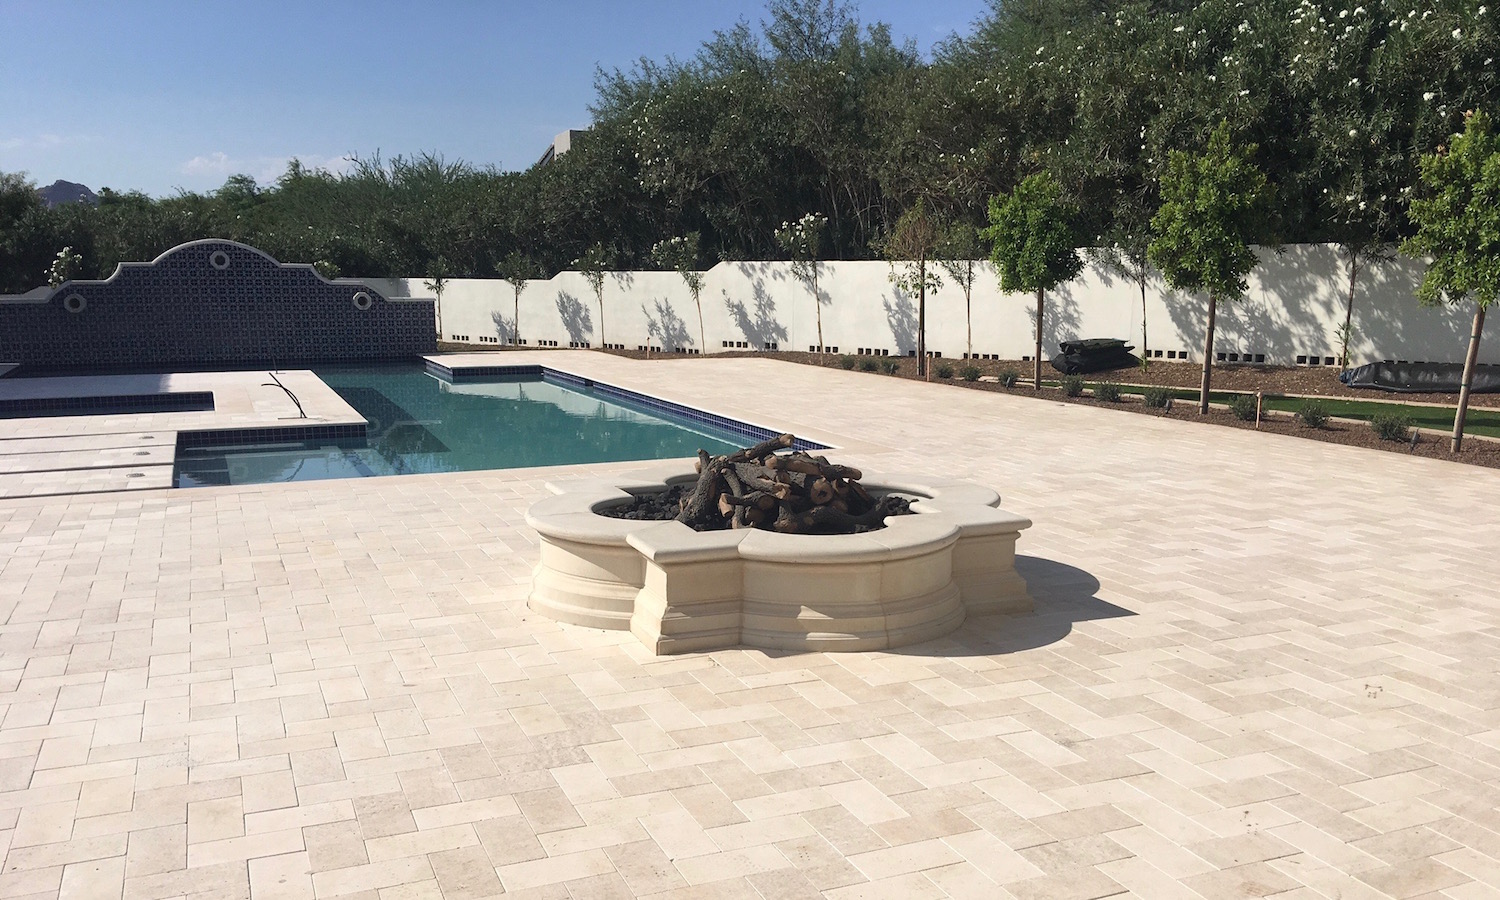 Pavers, Planters, Pool Coping Design with Precise Color Matching